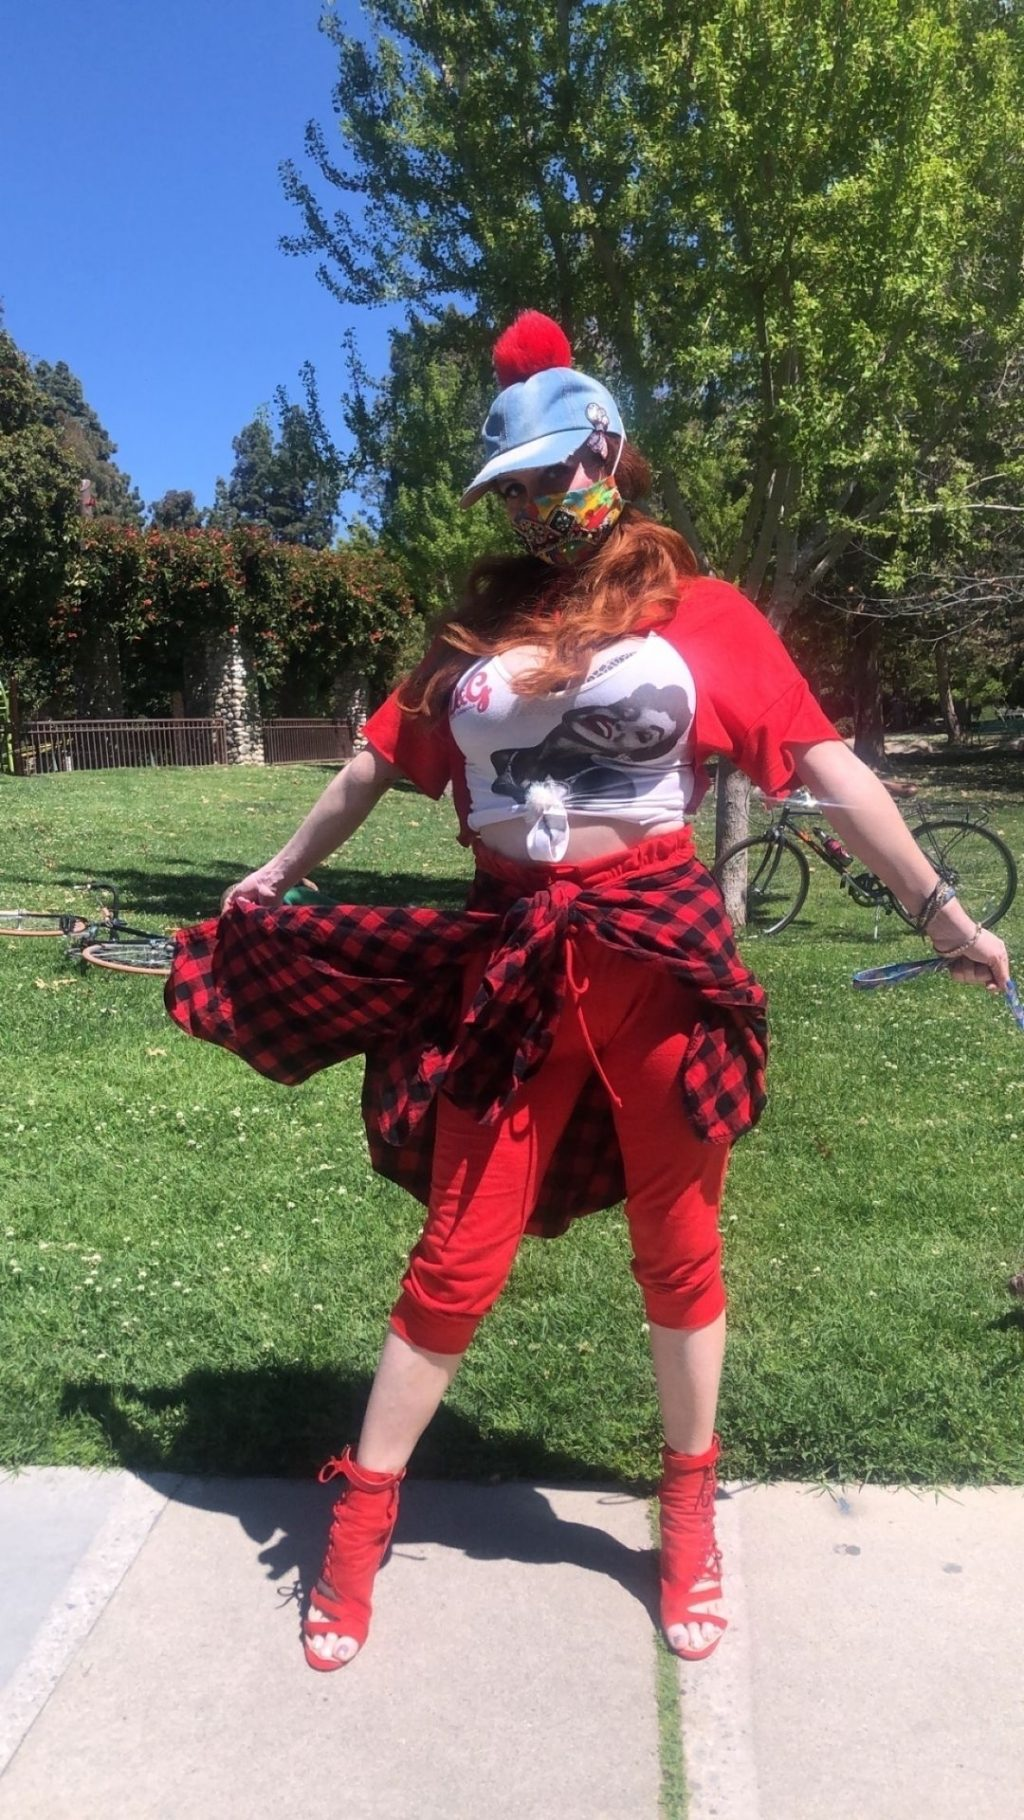 Phoebe Price Has a Collection of COVID-19 Personalized Masks (20 Photos)